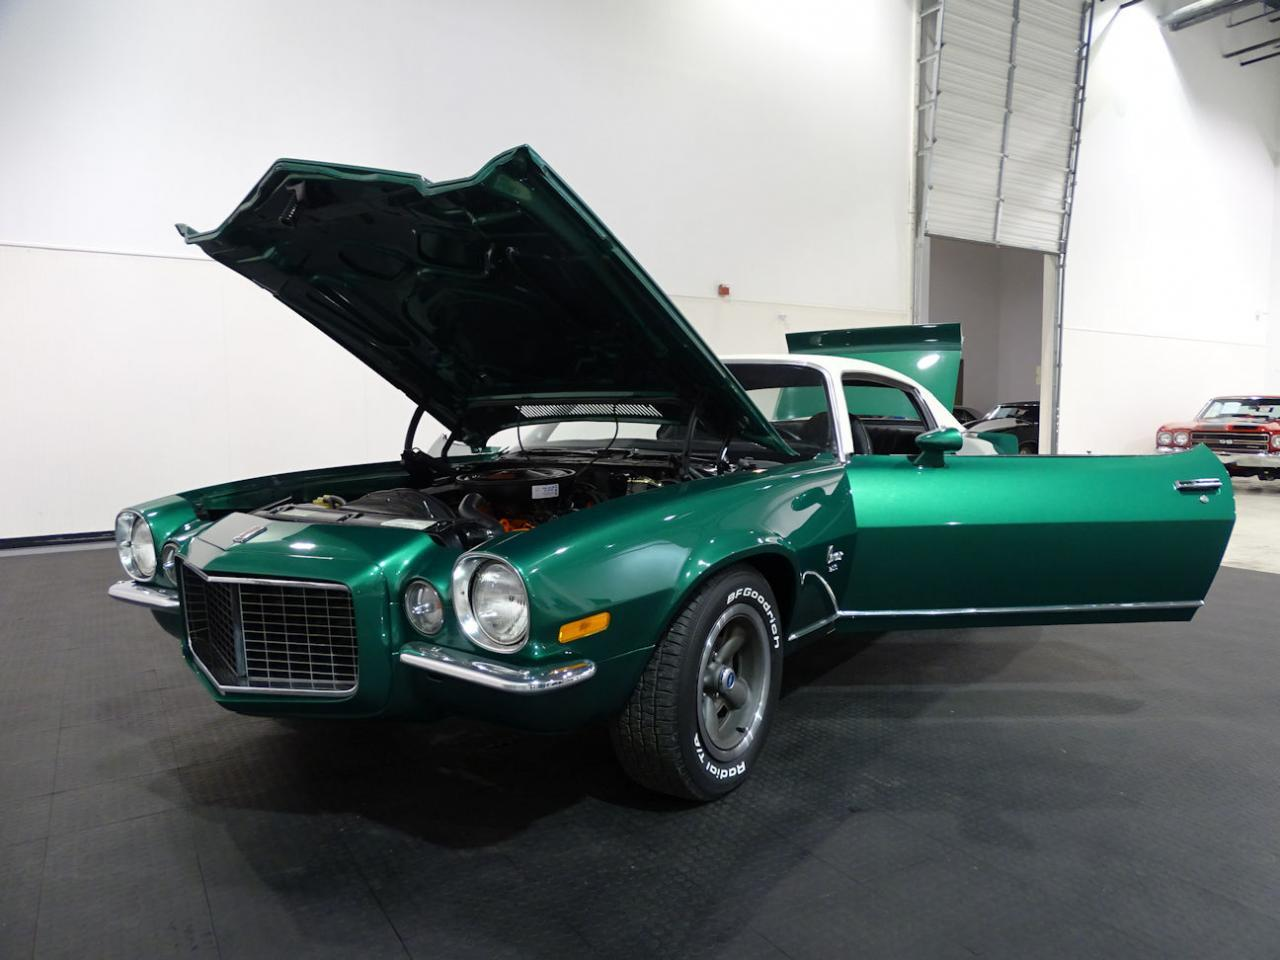 Large Picture of '73 Chevrolet Camaro located in Indianapolis Indiana - $25,995.00 Offered by Gateway Classic Cars - Indianapolis - NE3J